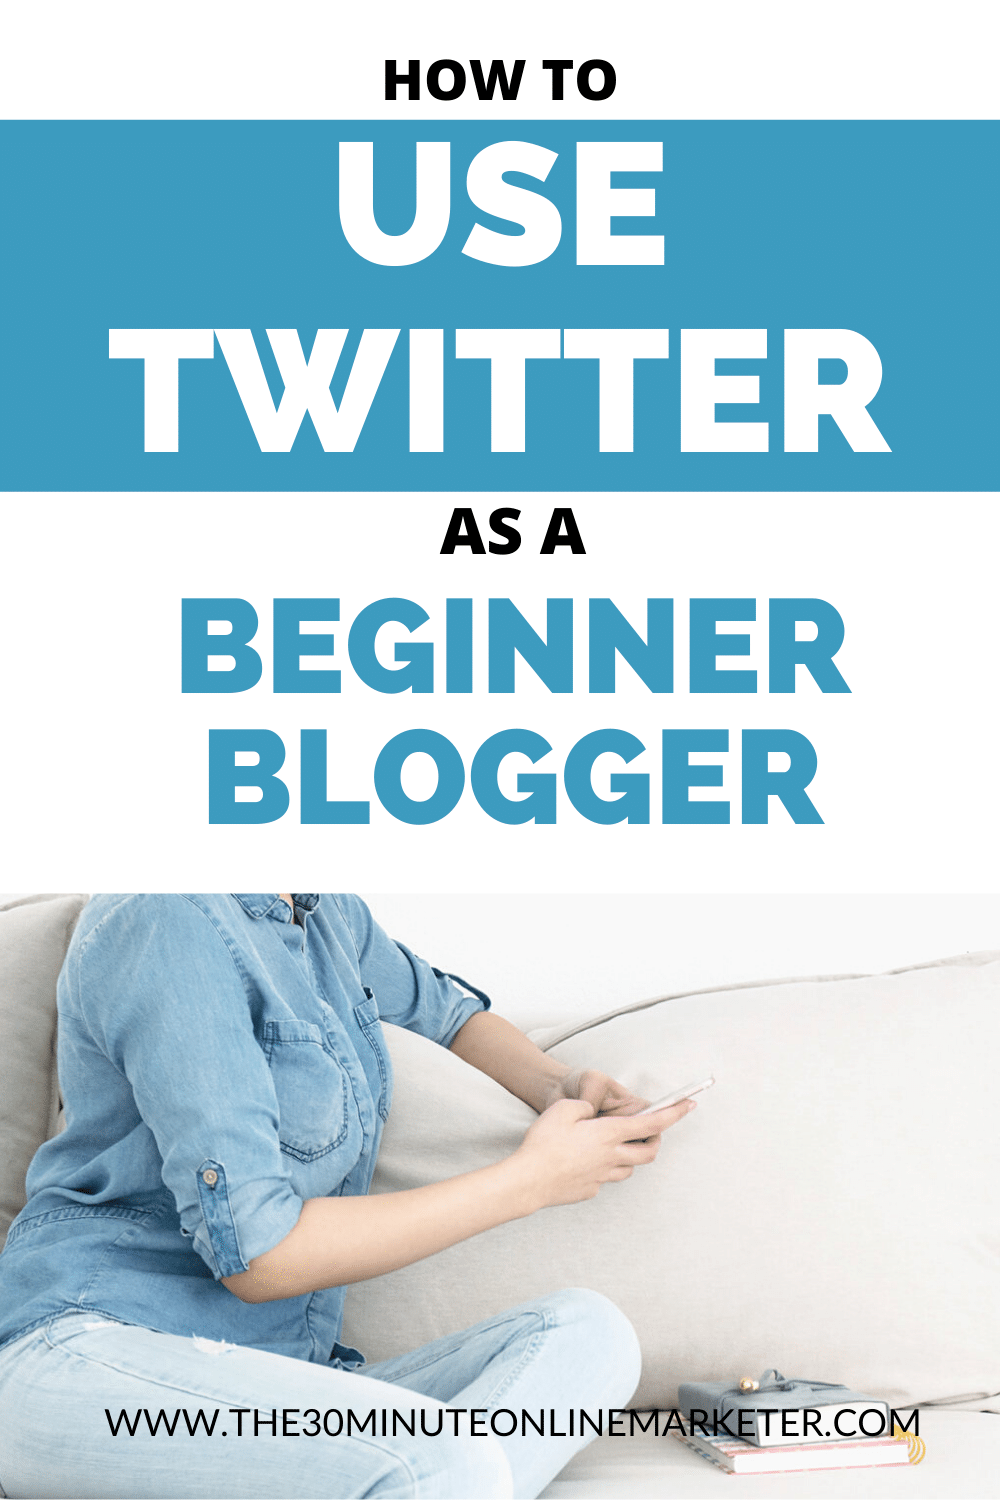 How to use Twitter as a beginner blogger